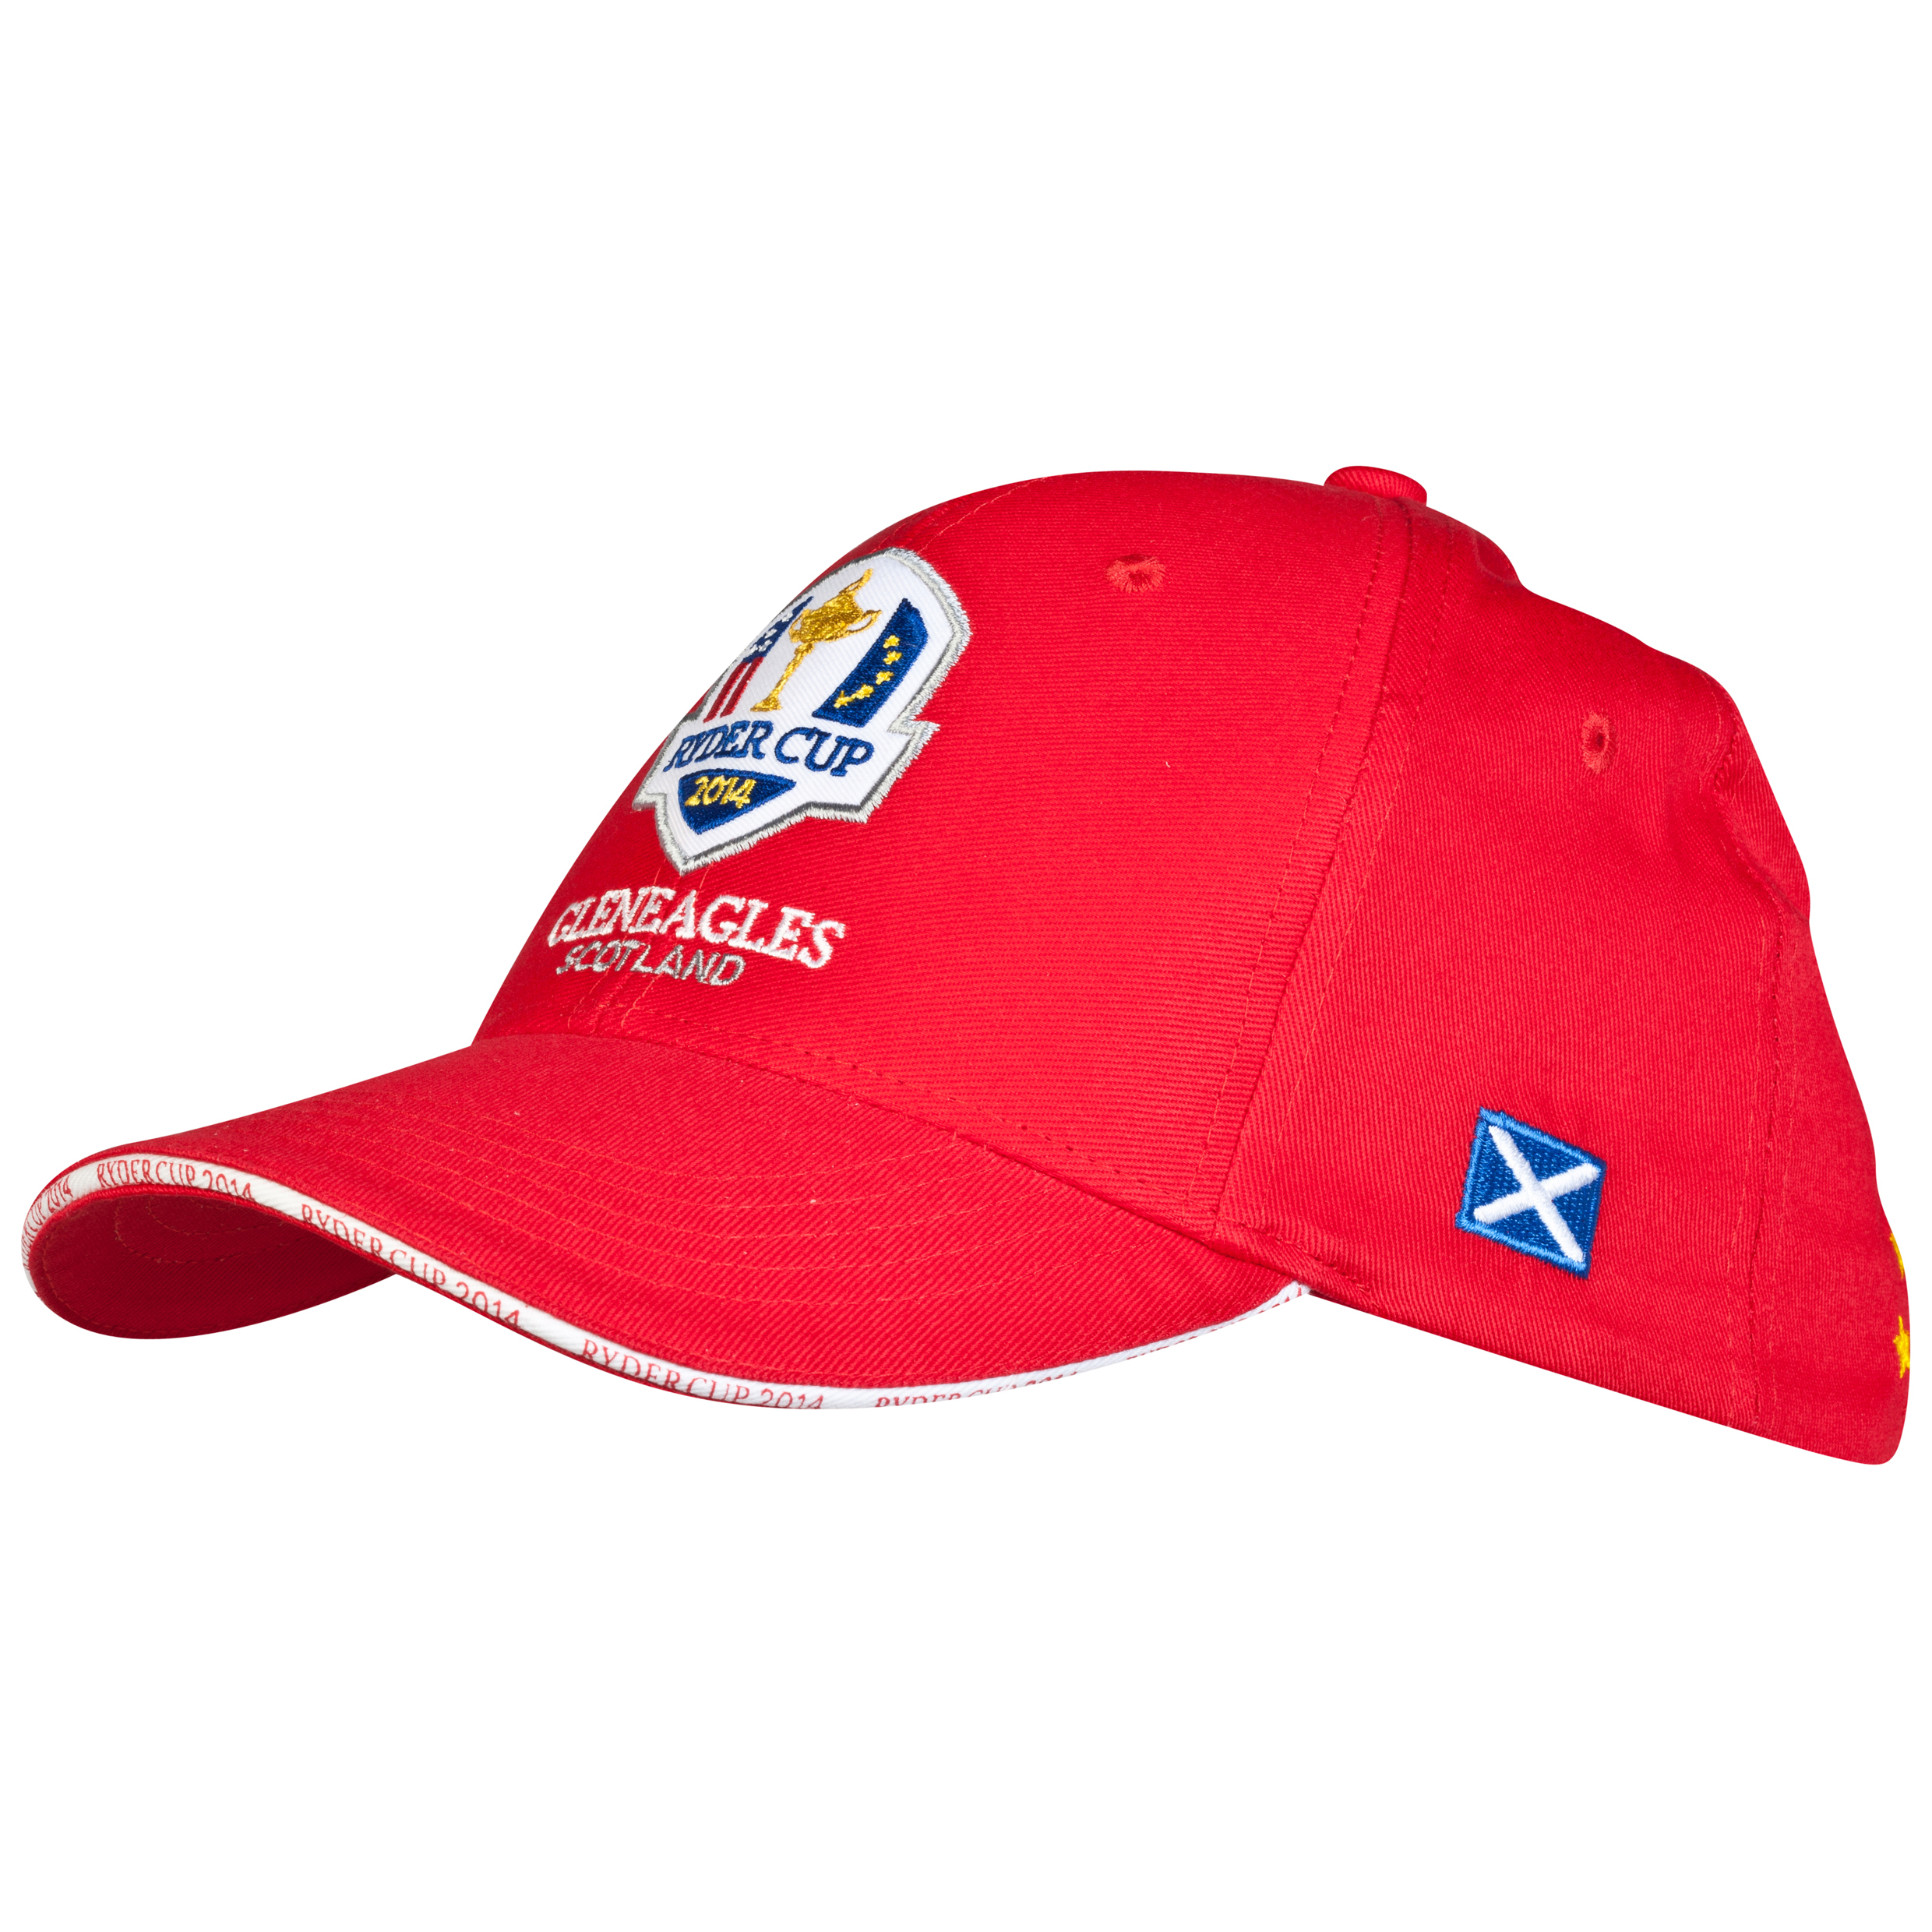 The 2014 Ryder Cup Structured Solid Sandwich Cap - Saltire & Stars - Red